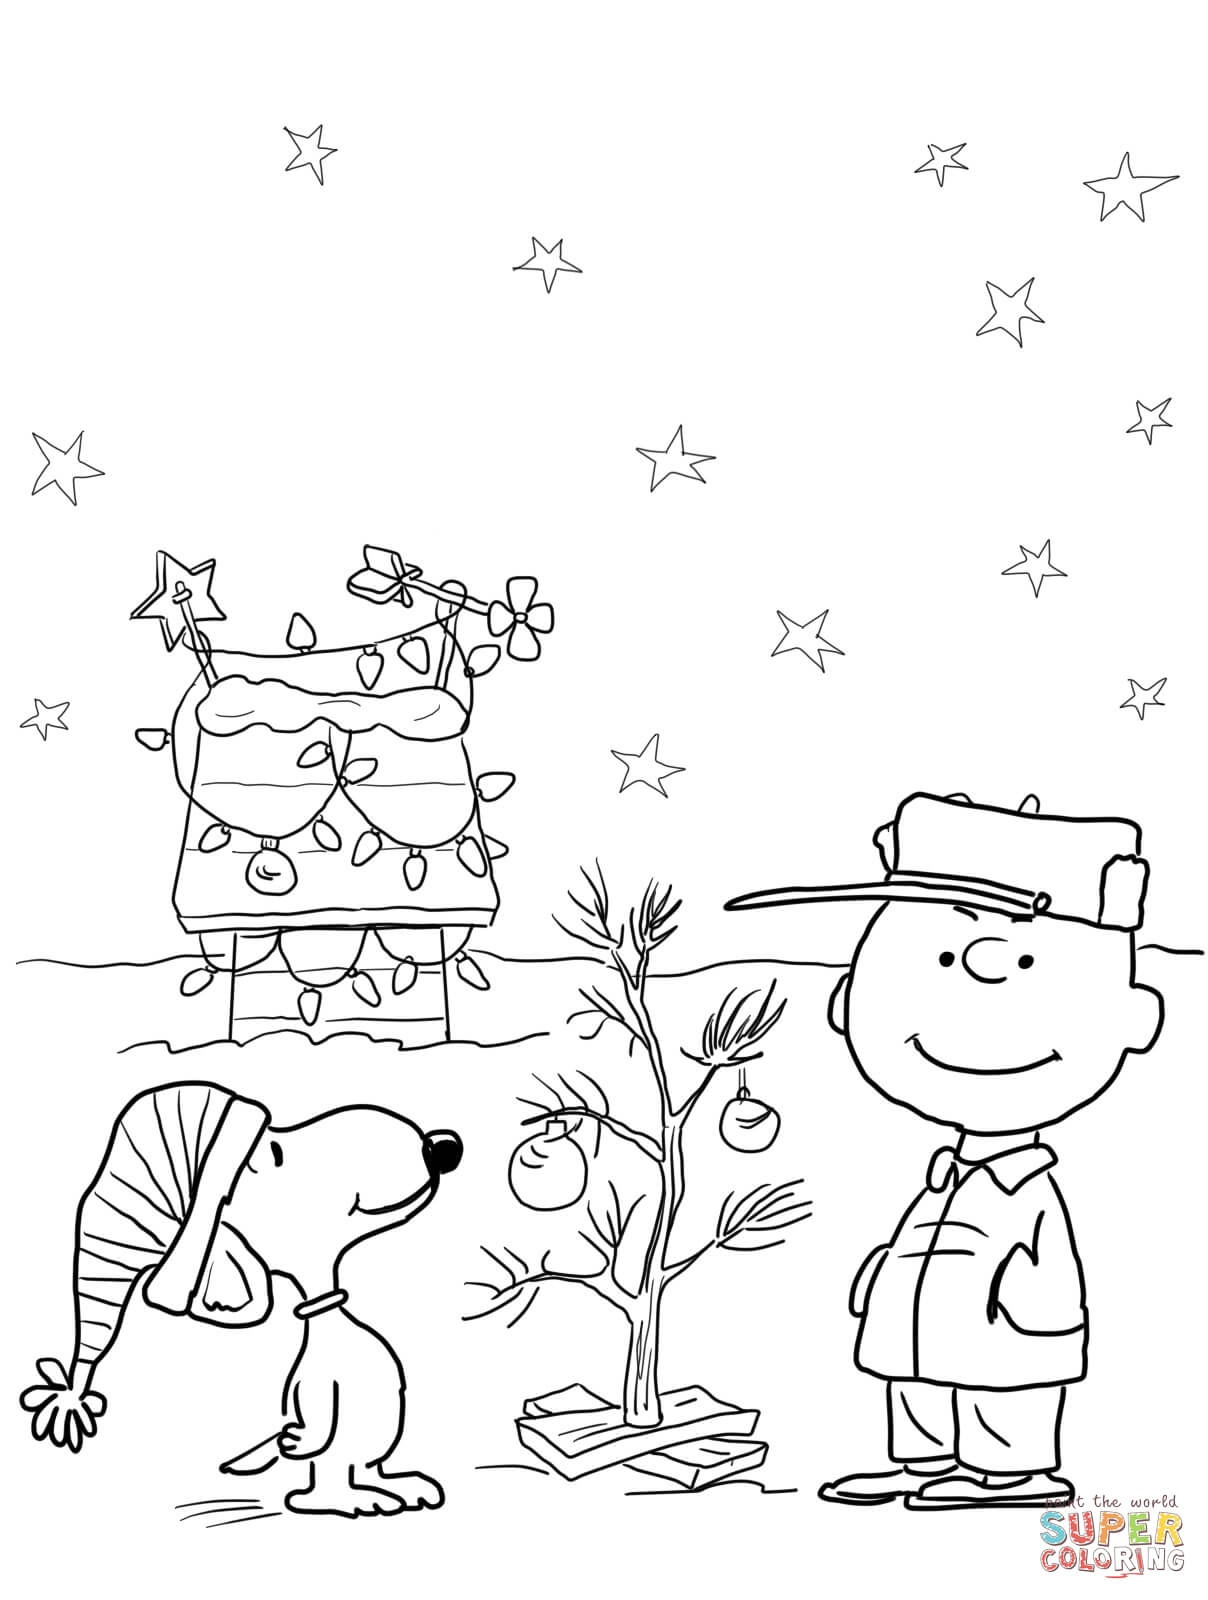 Charlie Brown Christmas Coloring Page   Free Printable Coloring Pages - Free Printable Christmas Cartoon Coloring Pages